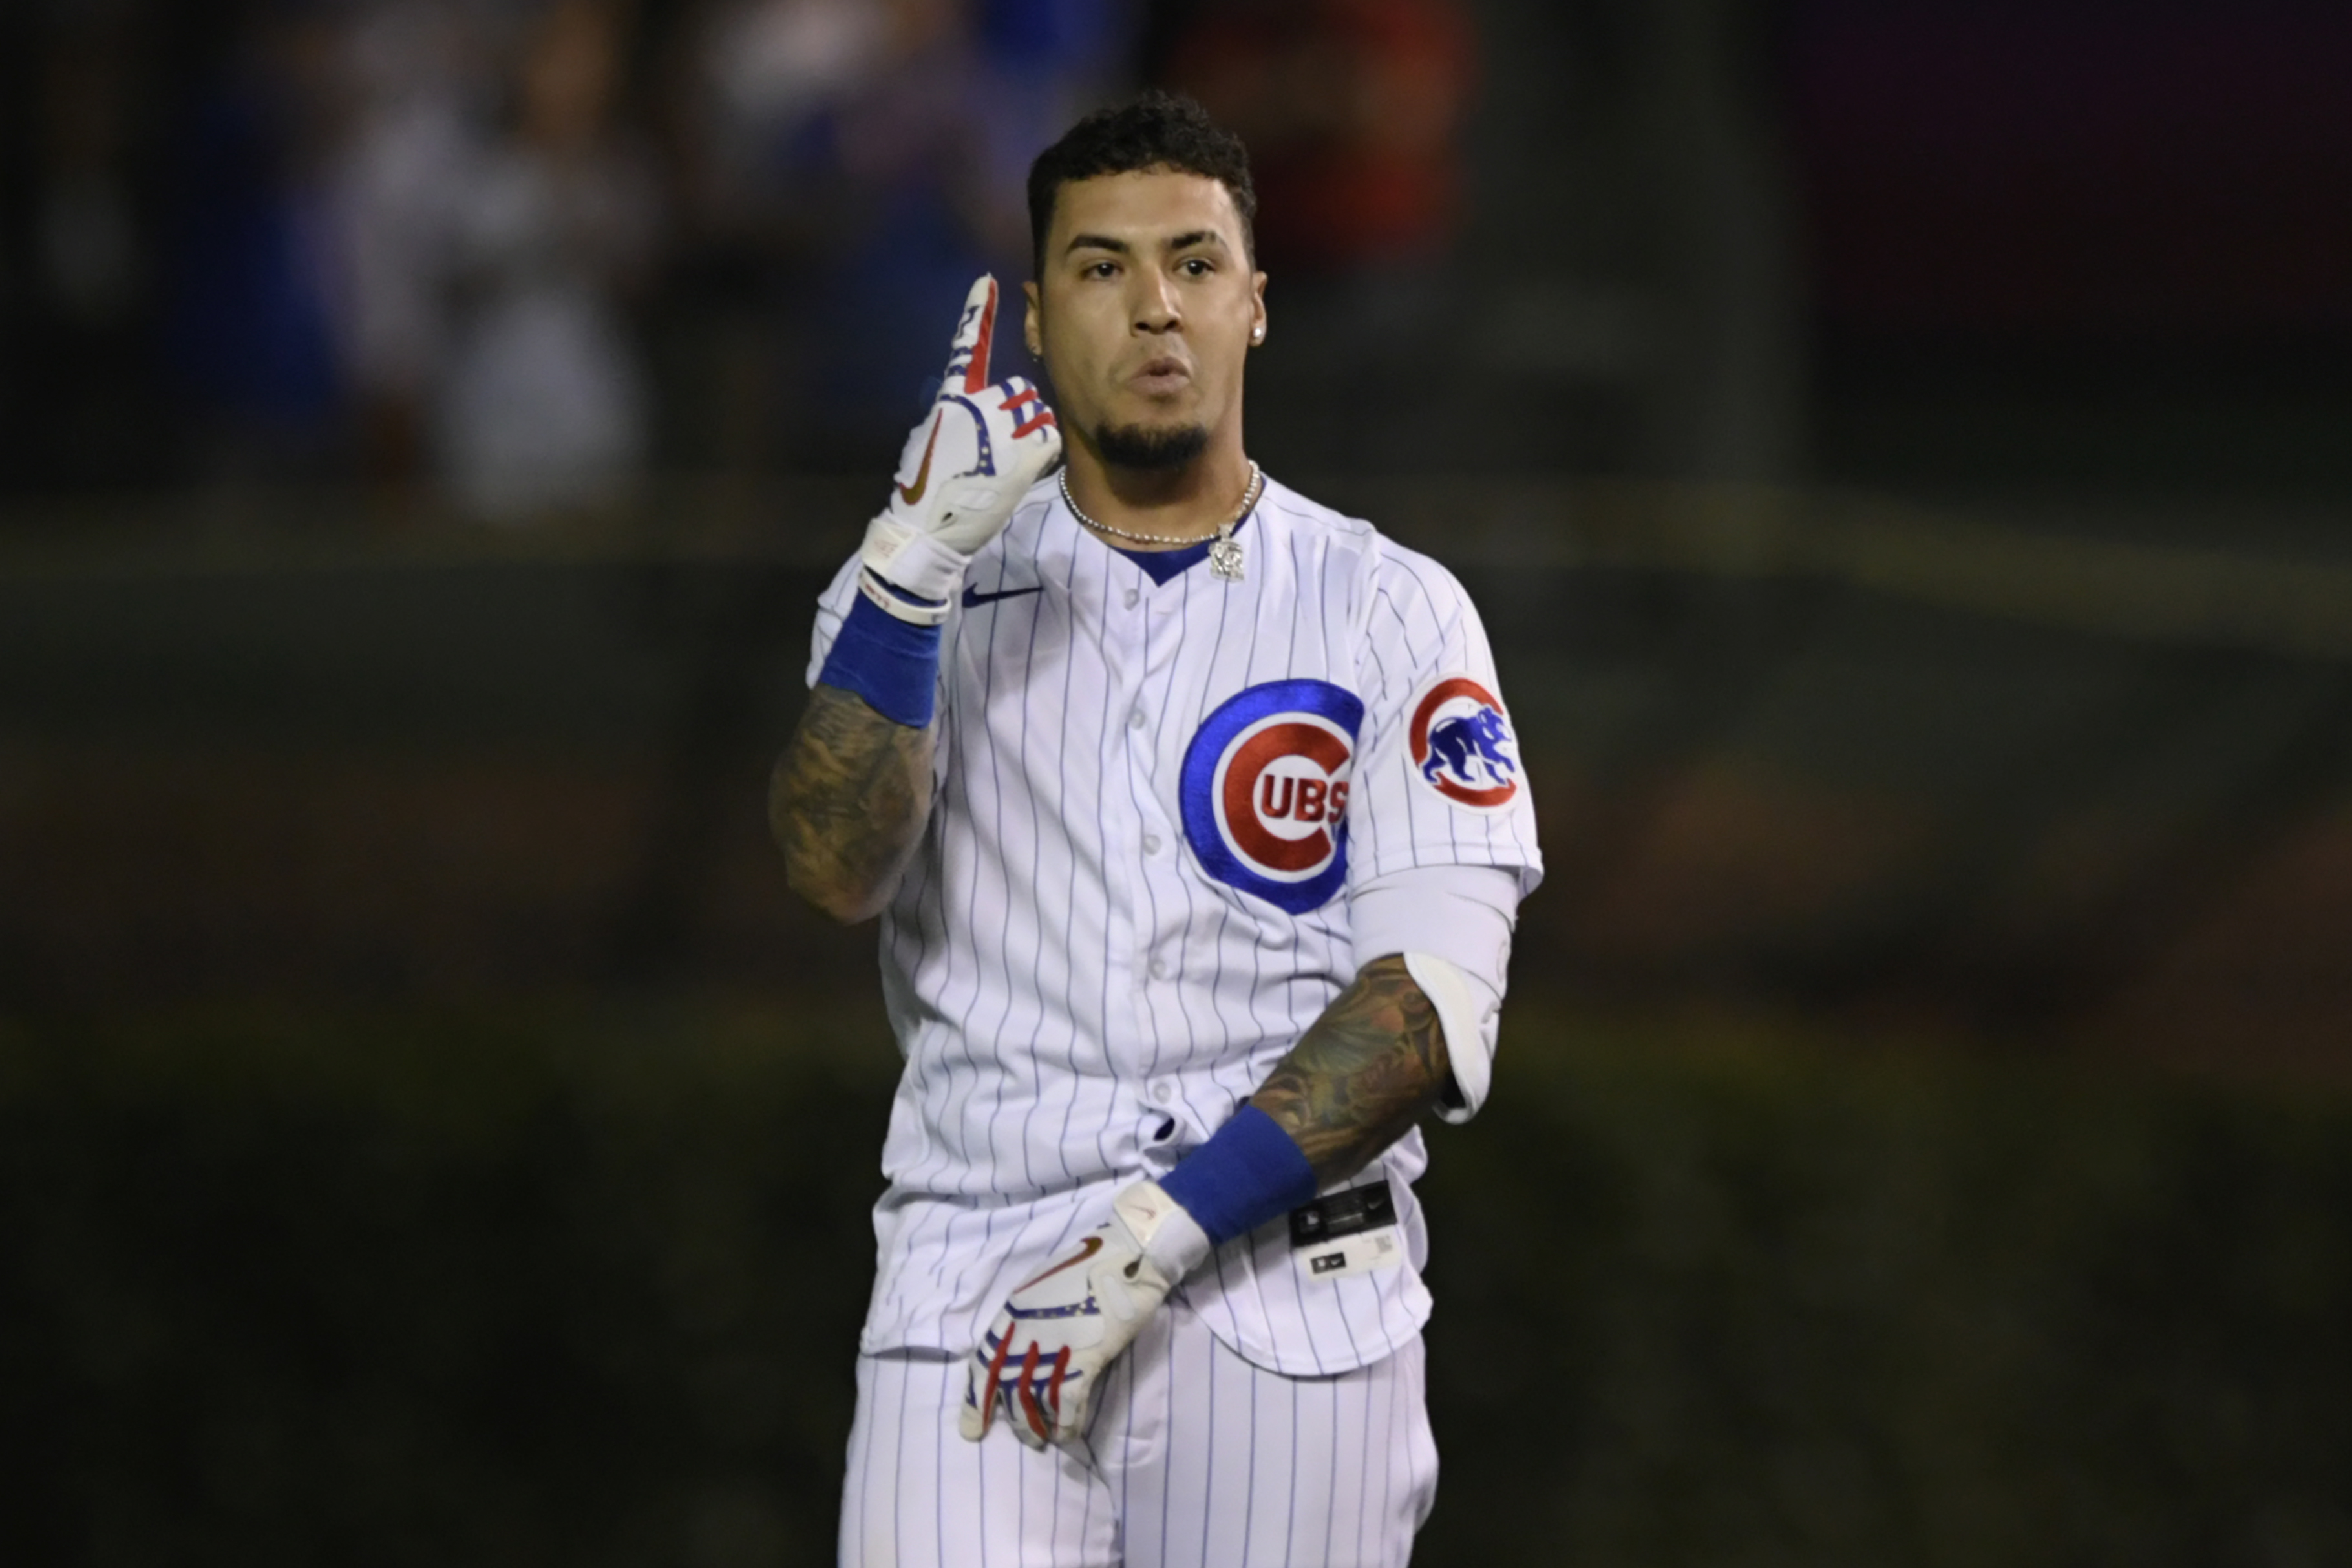 Javier Baez Would 'Love' to Sign Contract with Cubs as Free Agent After Trade to Mets